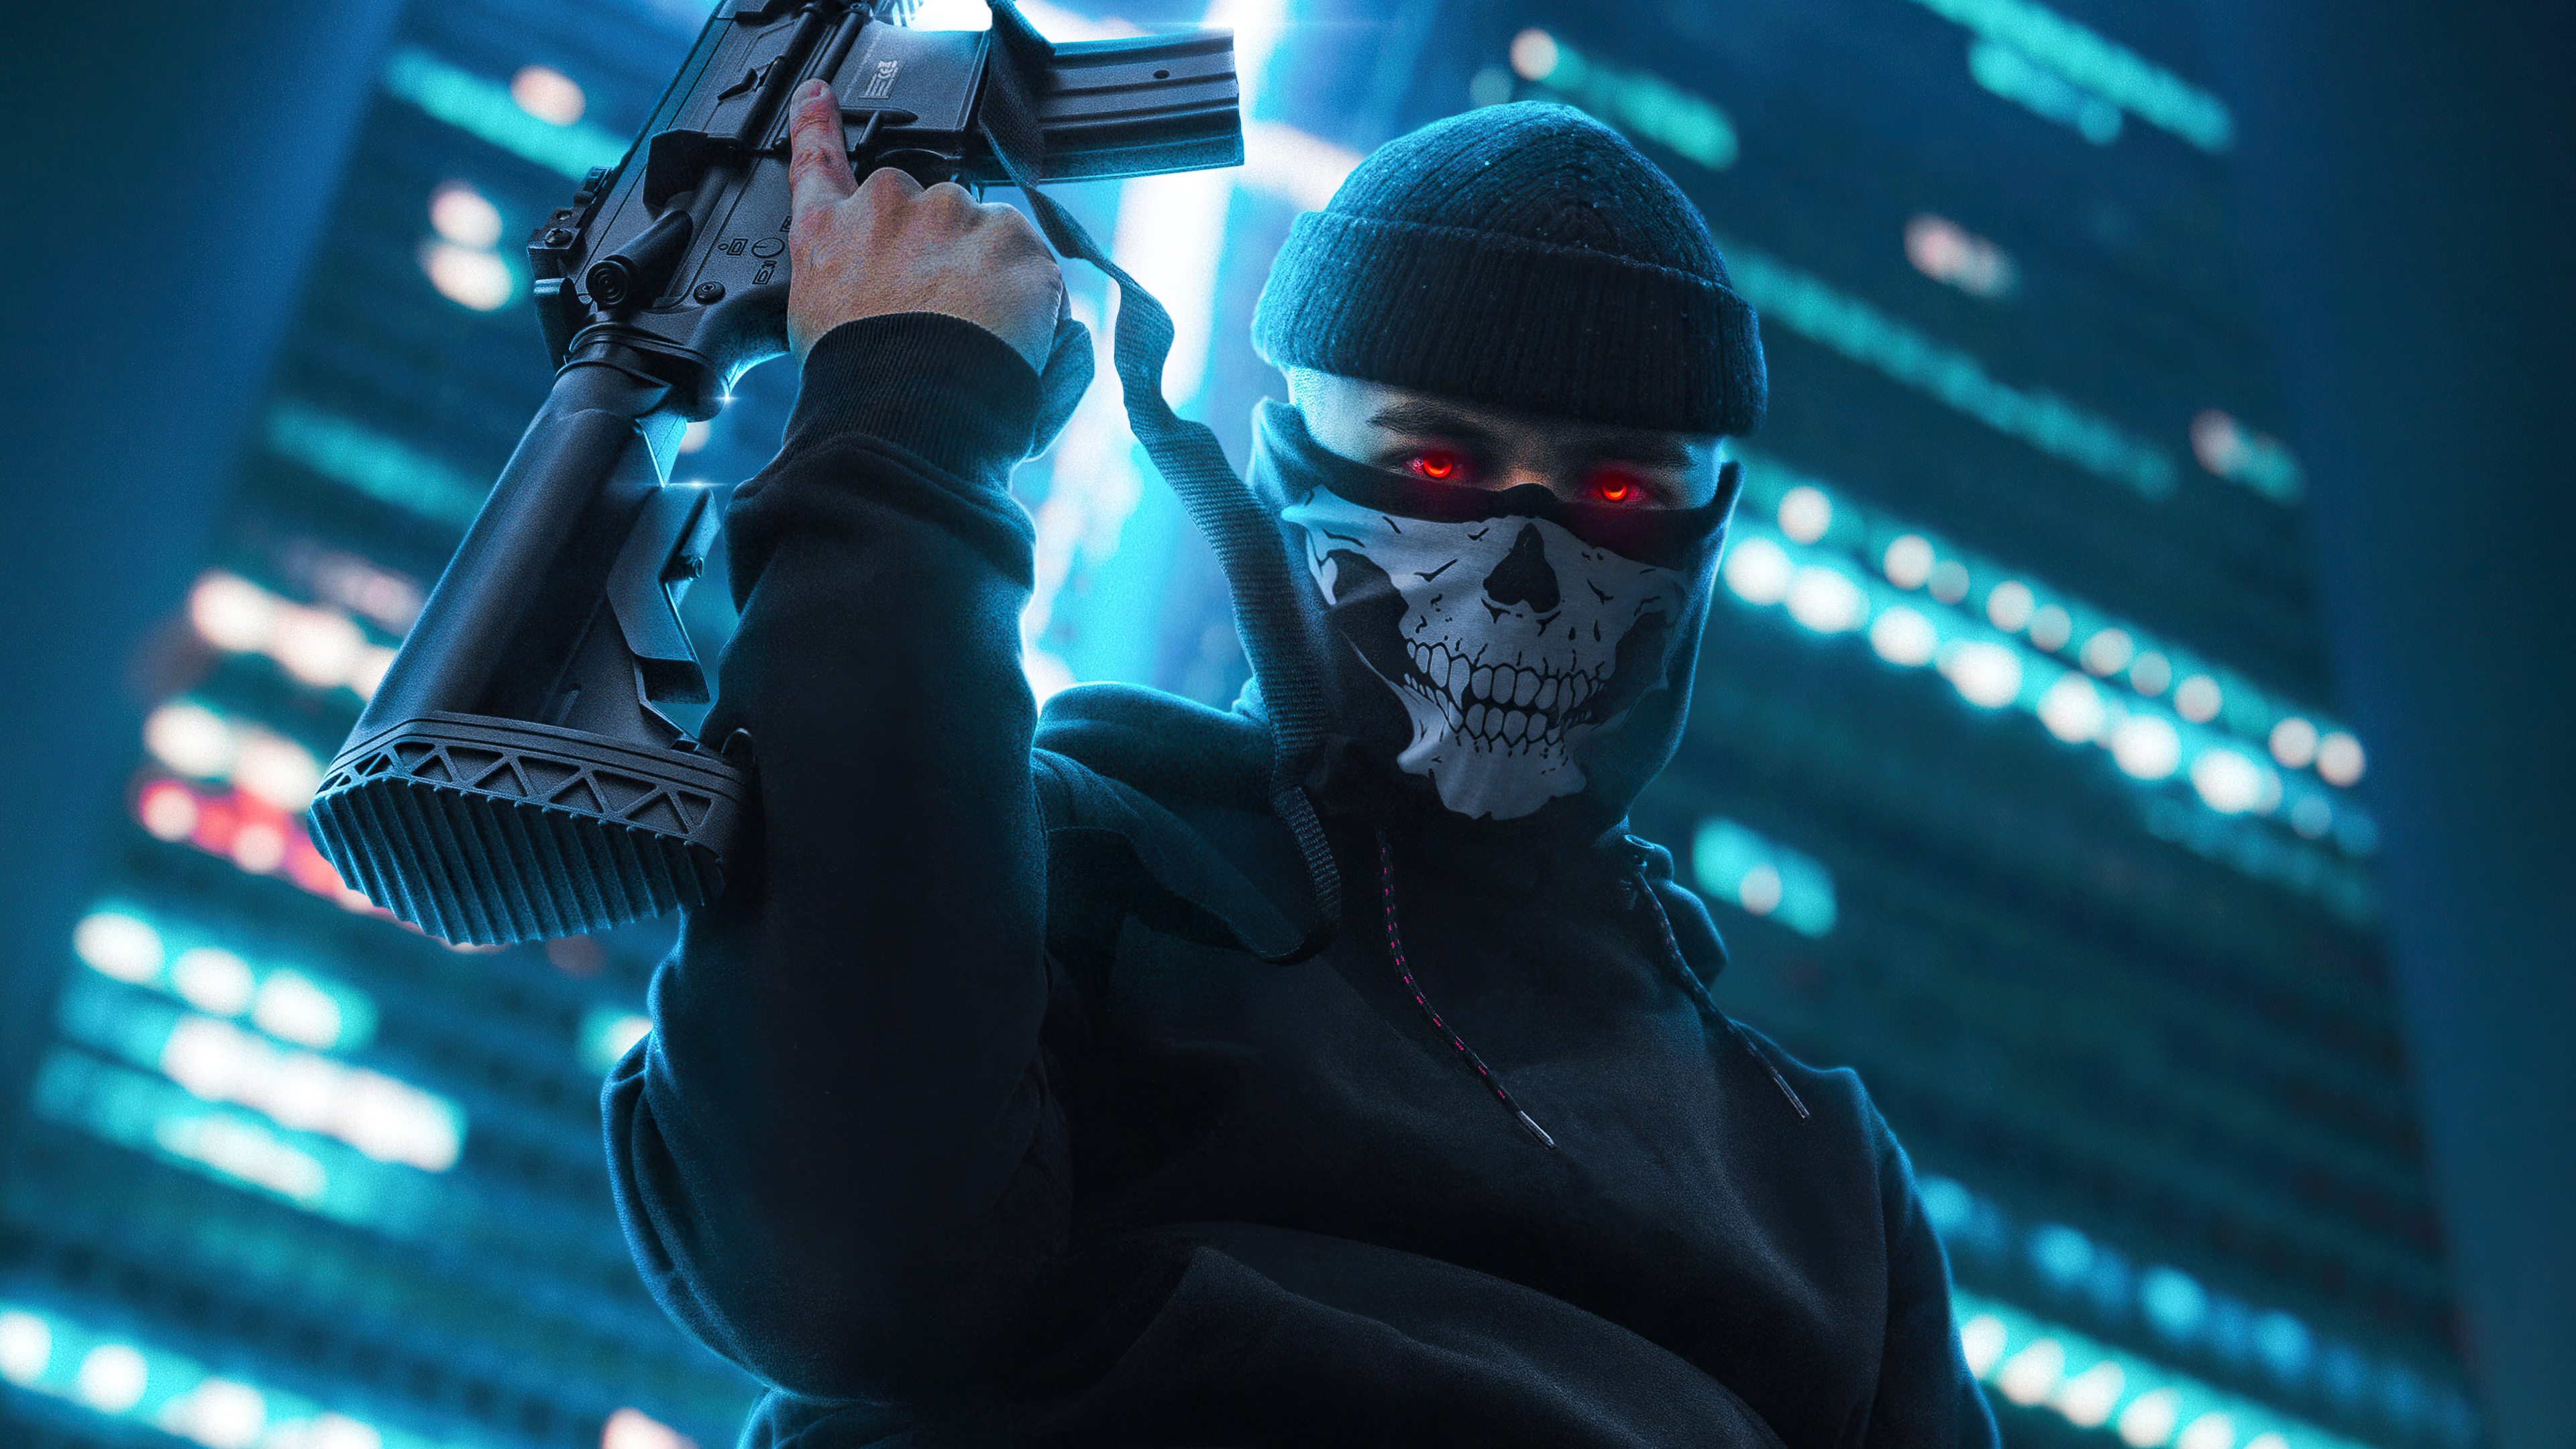 boy with skull mask and ak47 4k 1603398352 - Boy With Skull Mask And Ak47 4k - Boy With Skull Mask And Ak47 4k wallpapers